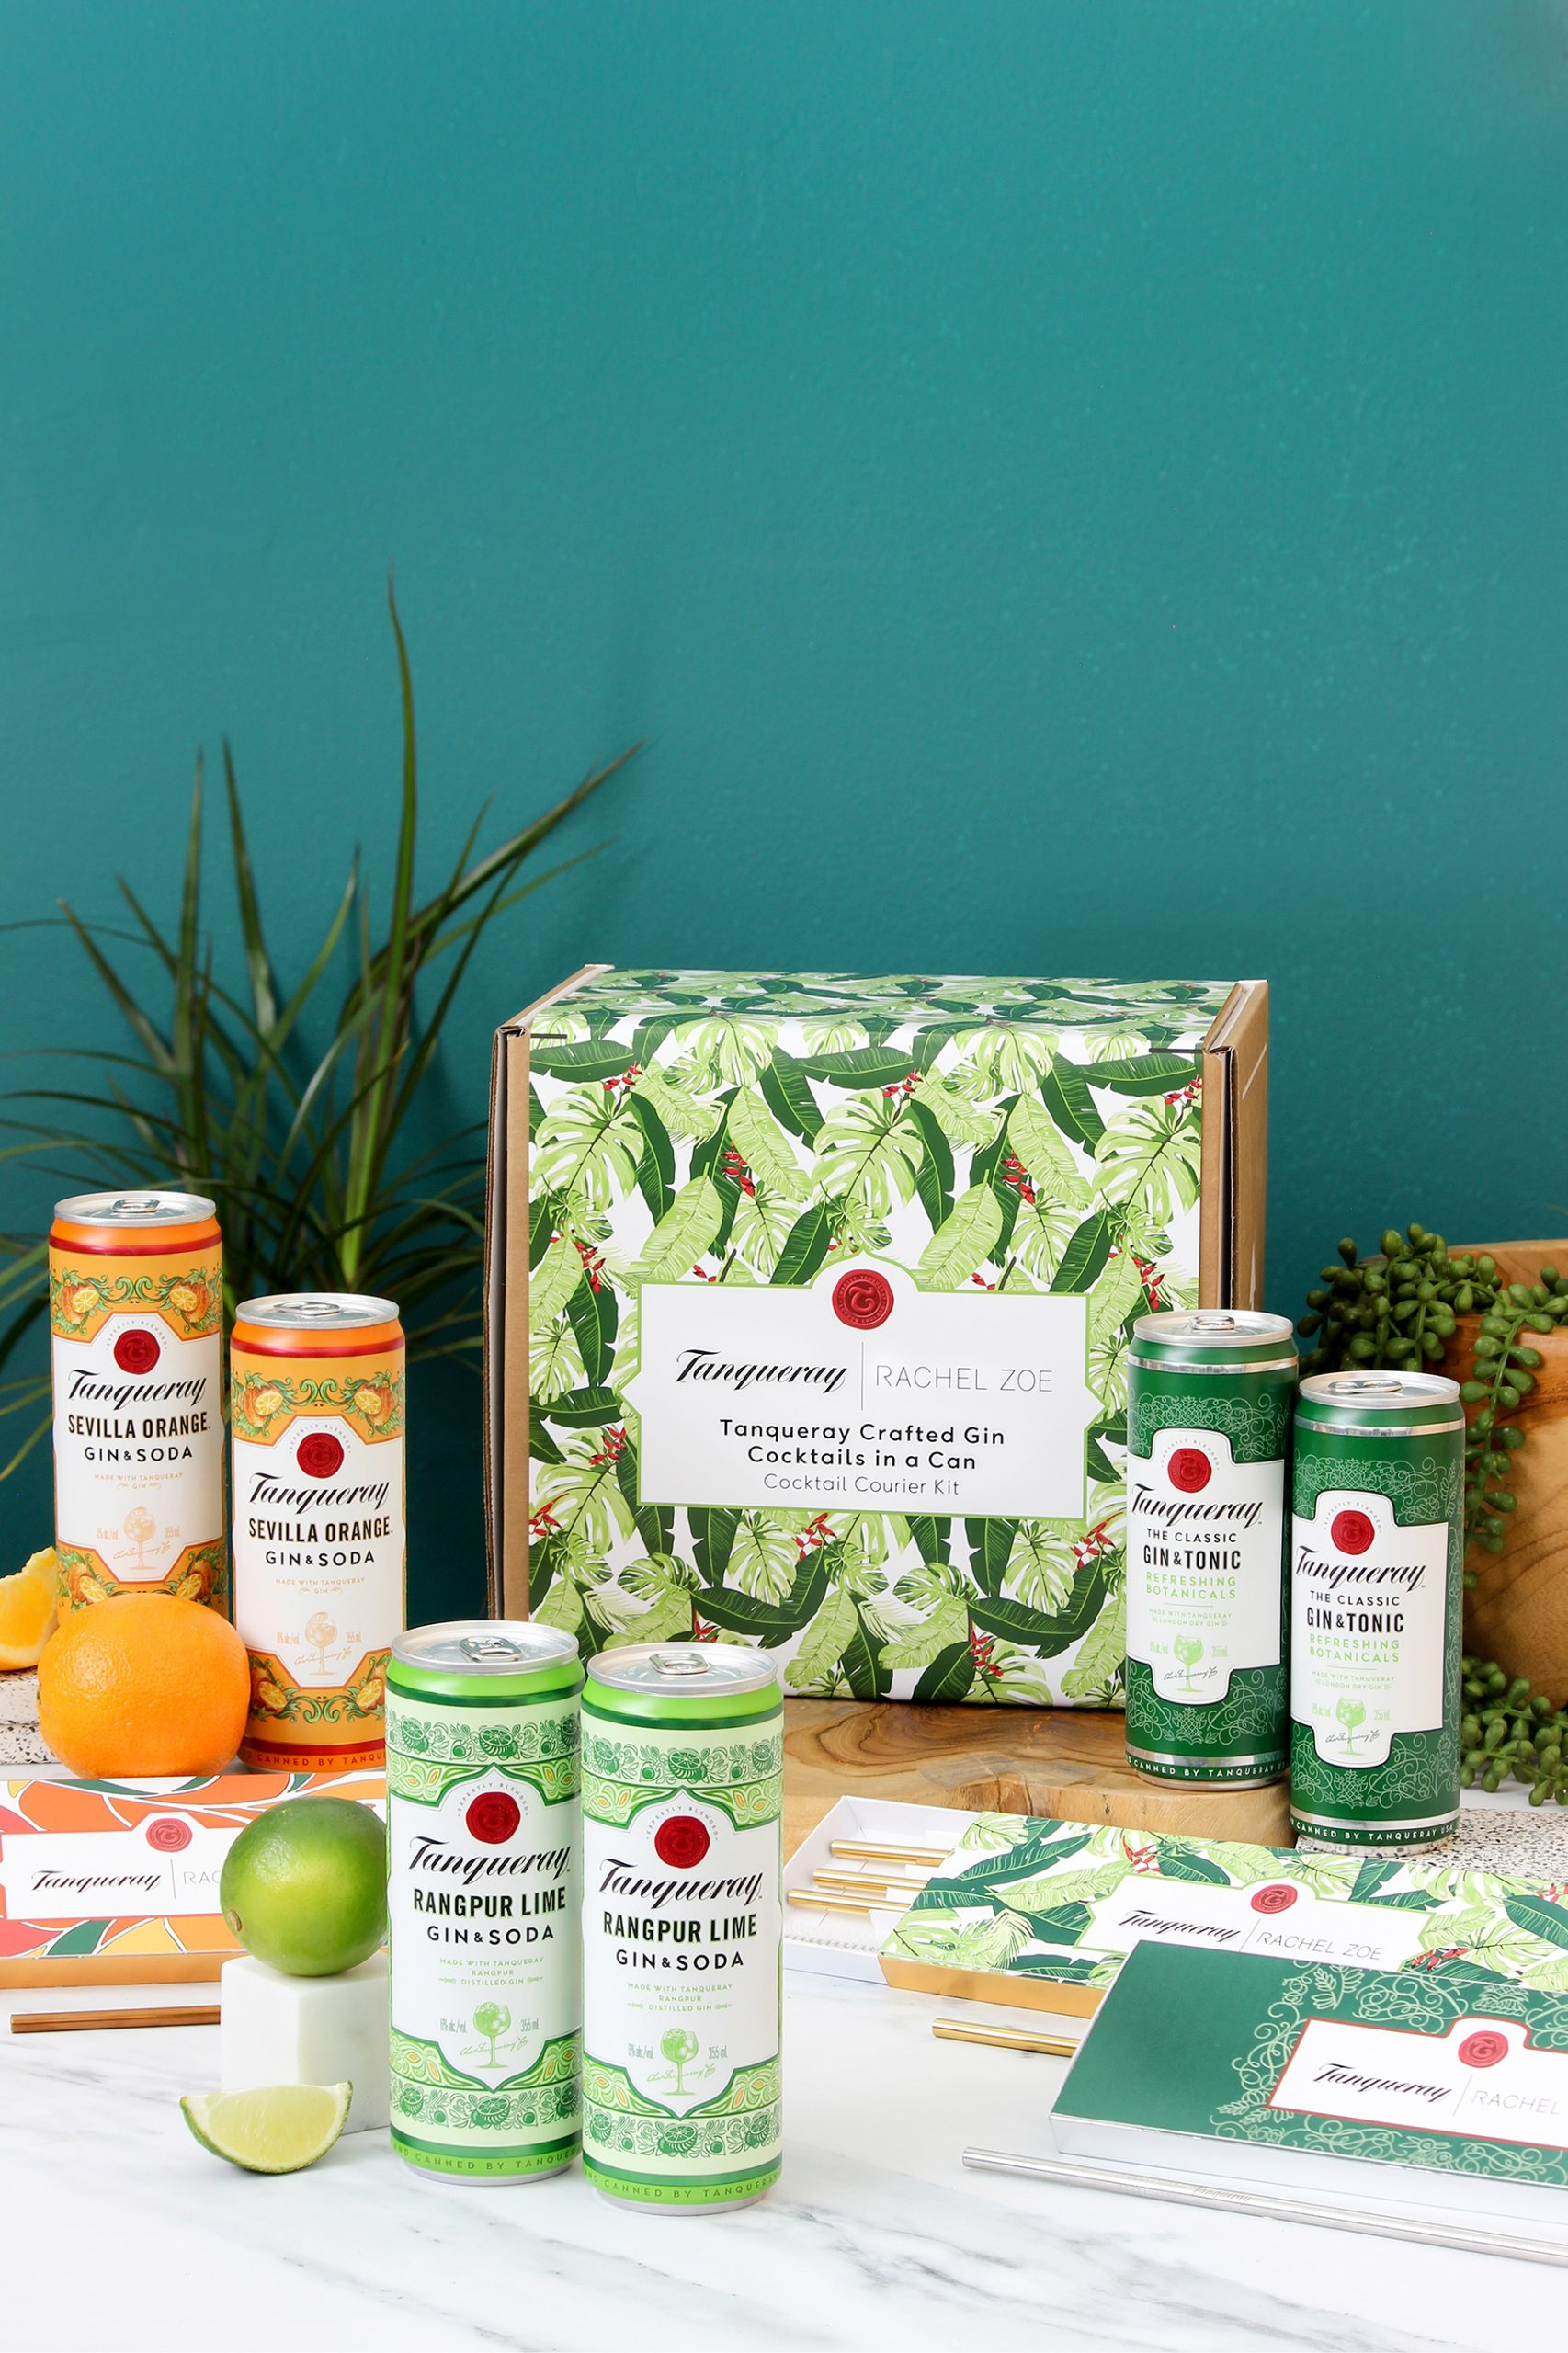 Sip In Style: Tanqueray Announces New Reusable Straw Capsule Collection In Collaboration With Fashion Icon Rachel Zoe photo